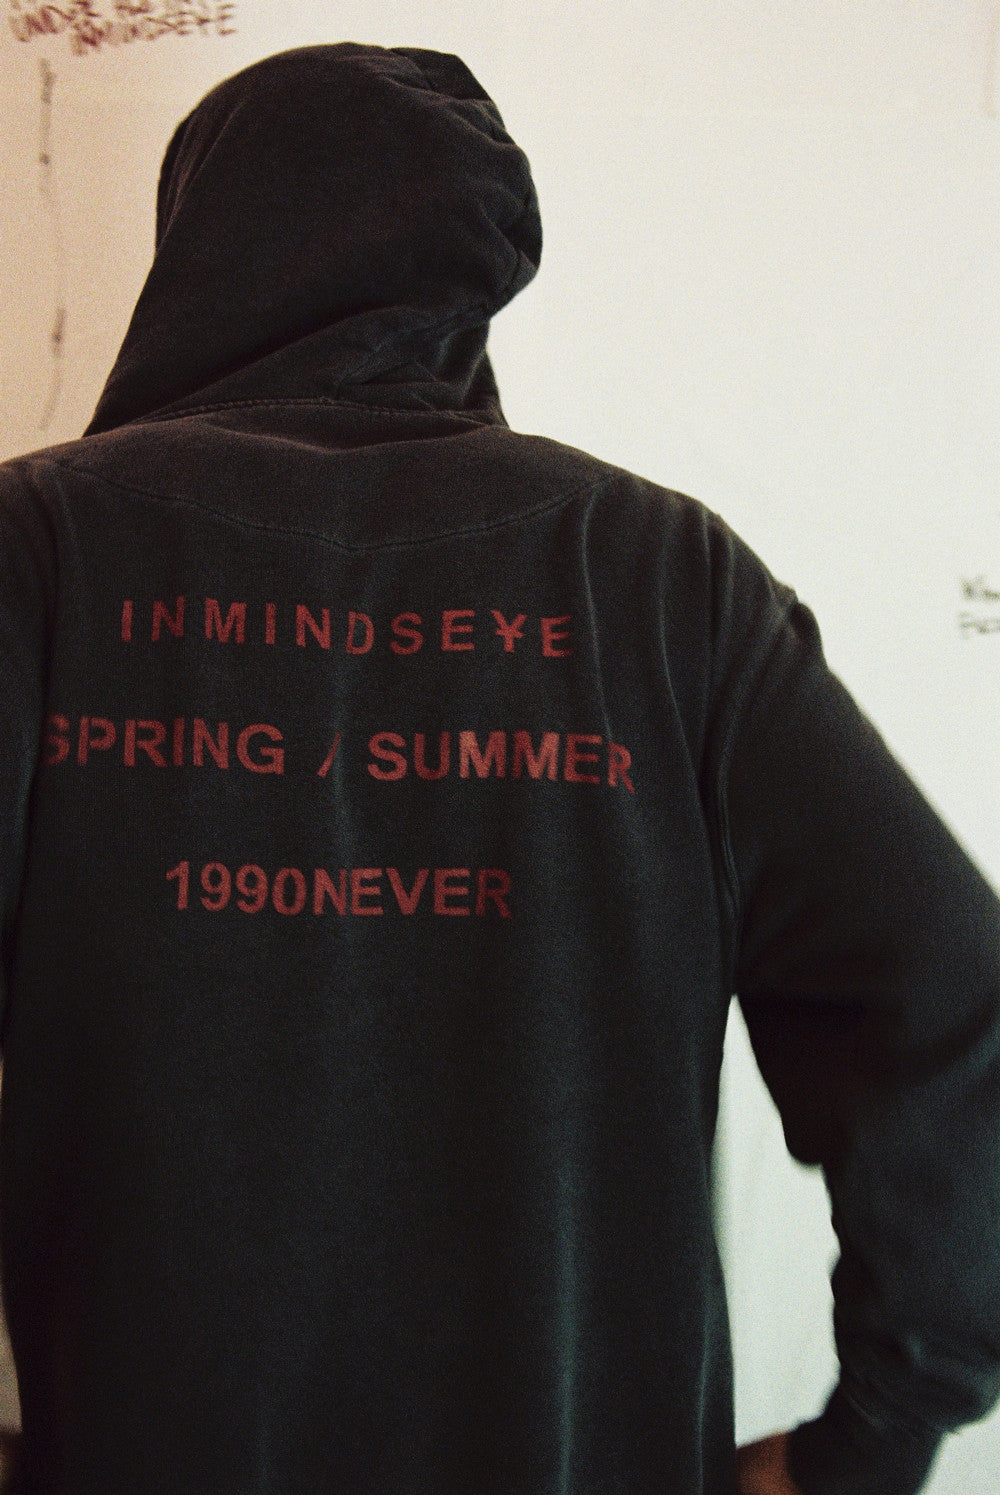 1990NEVER again hood / vintage black